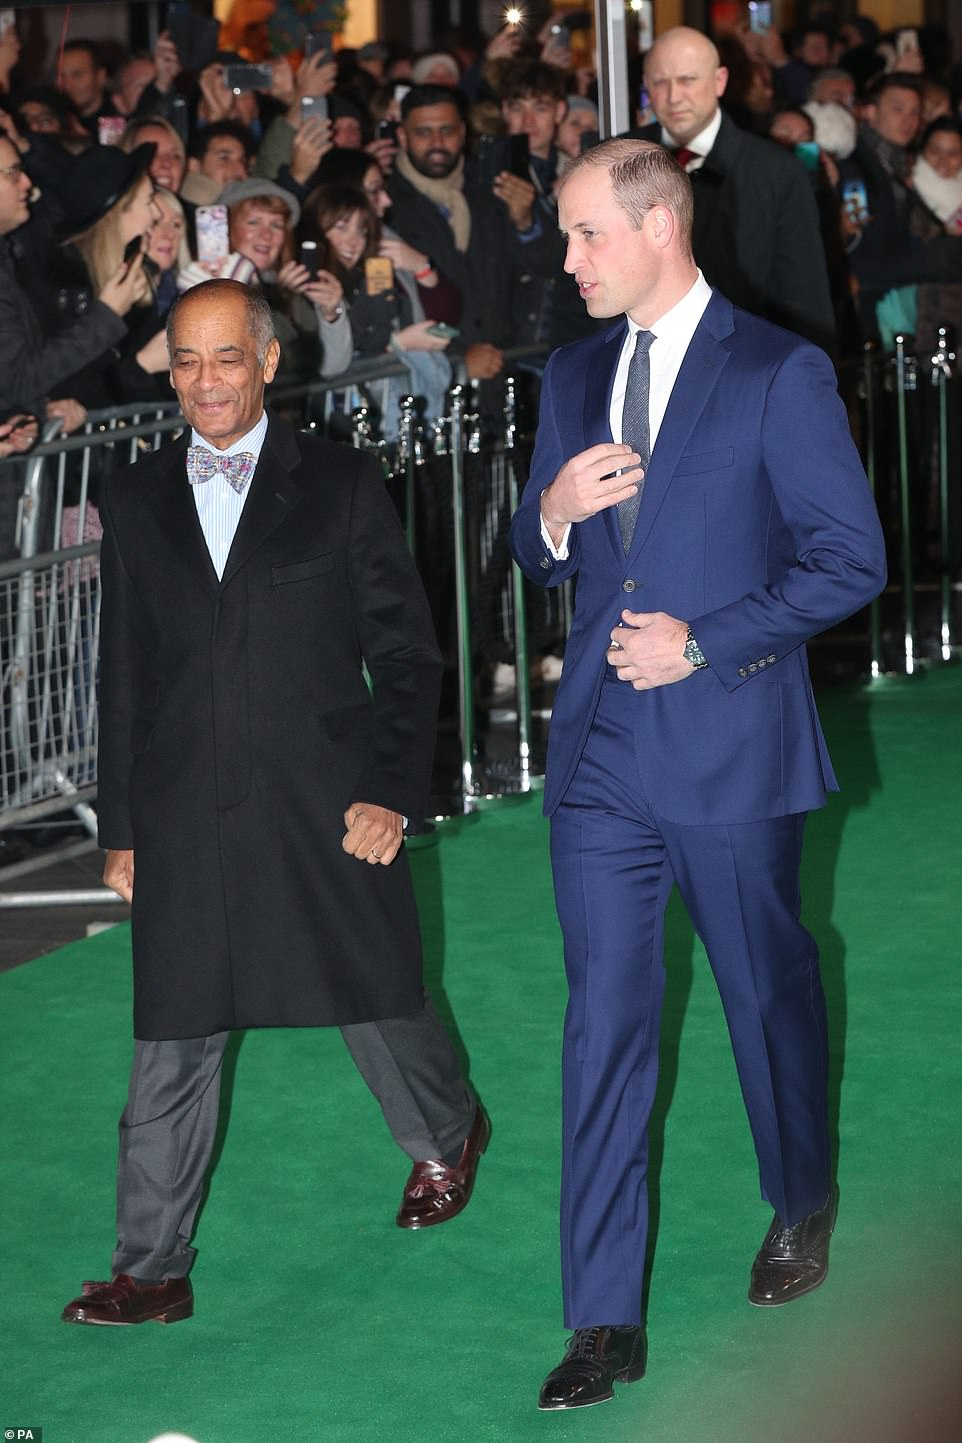 The Duke of Cambridge attends Tusk Trust Awards at Empire Theatre